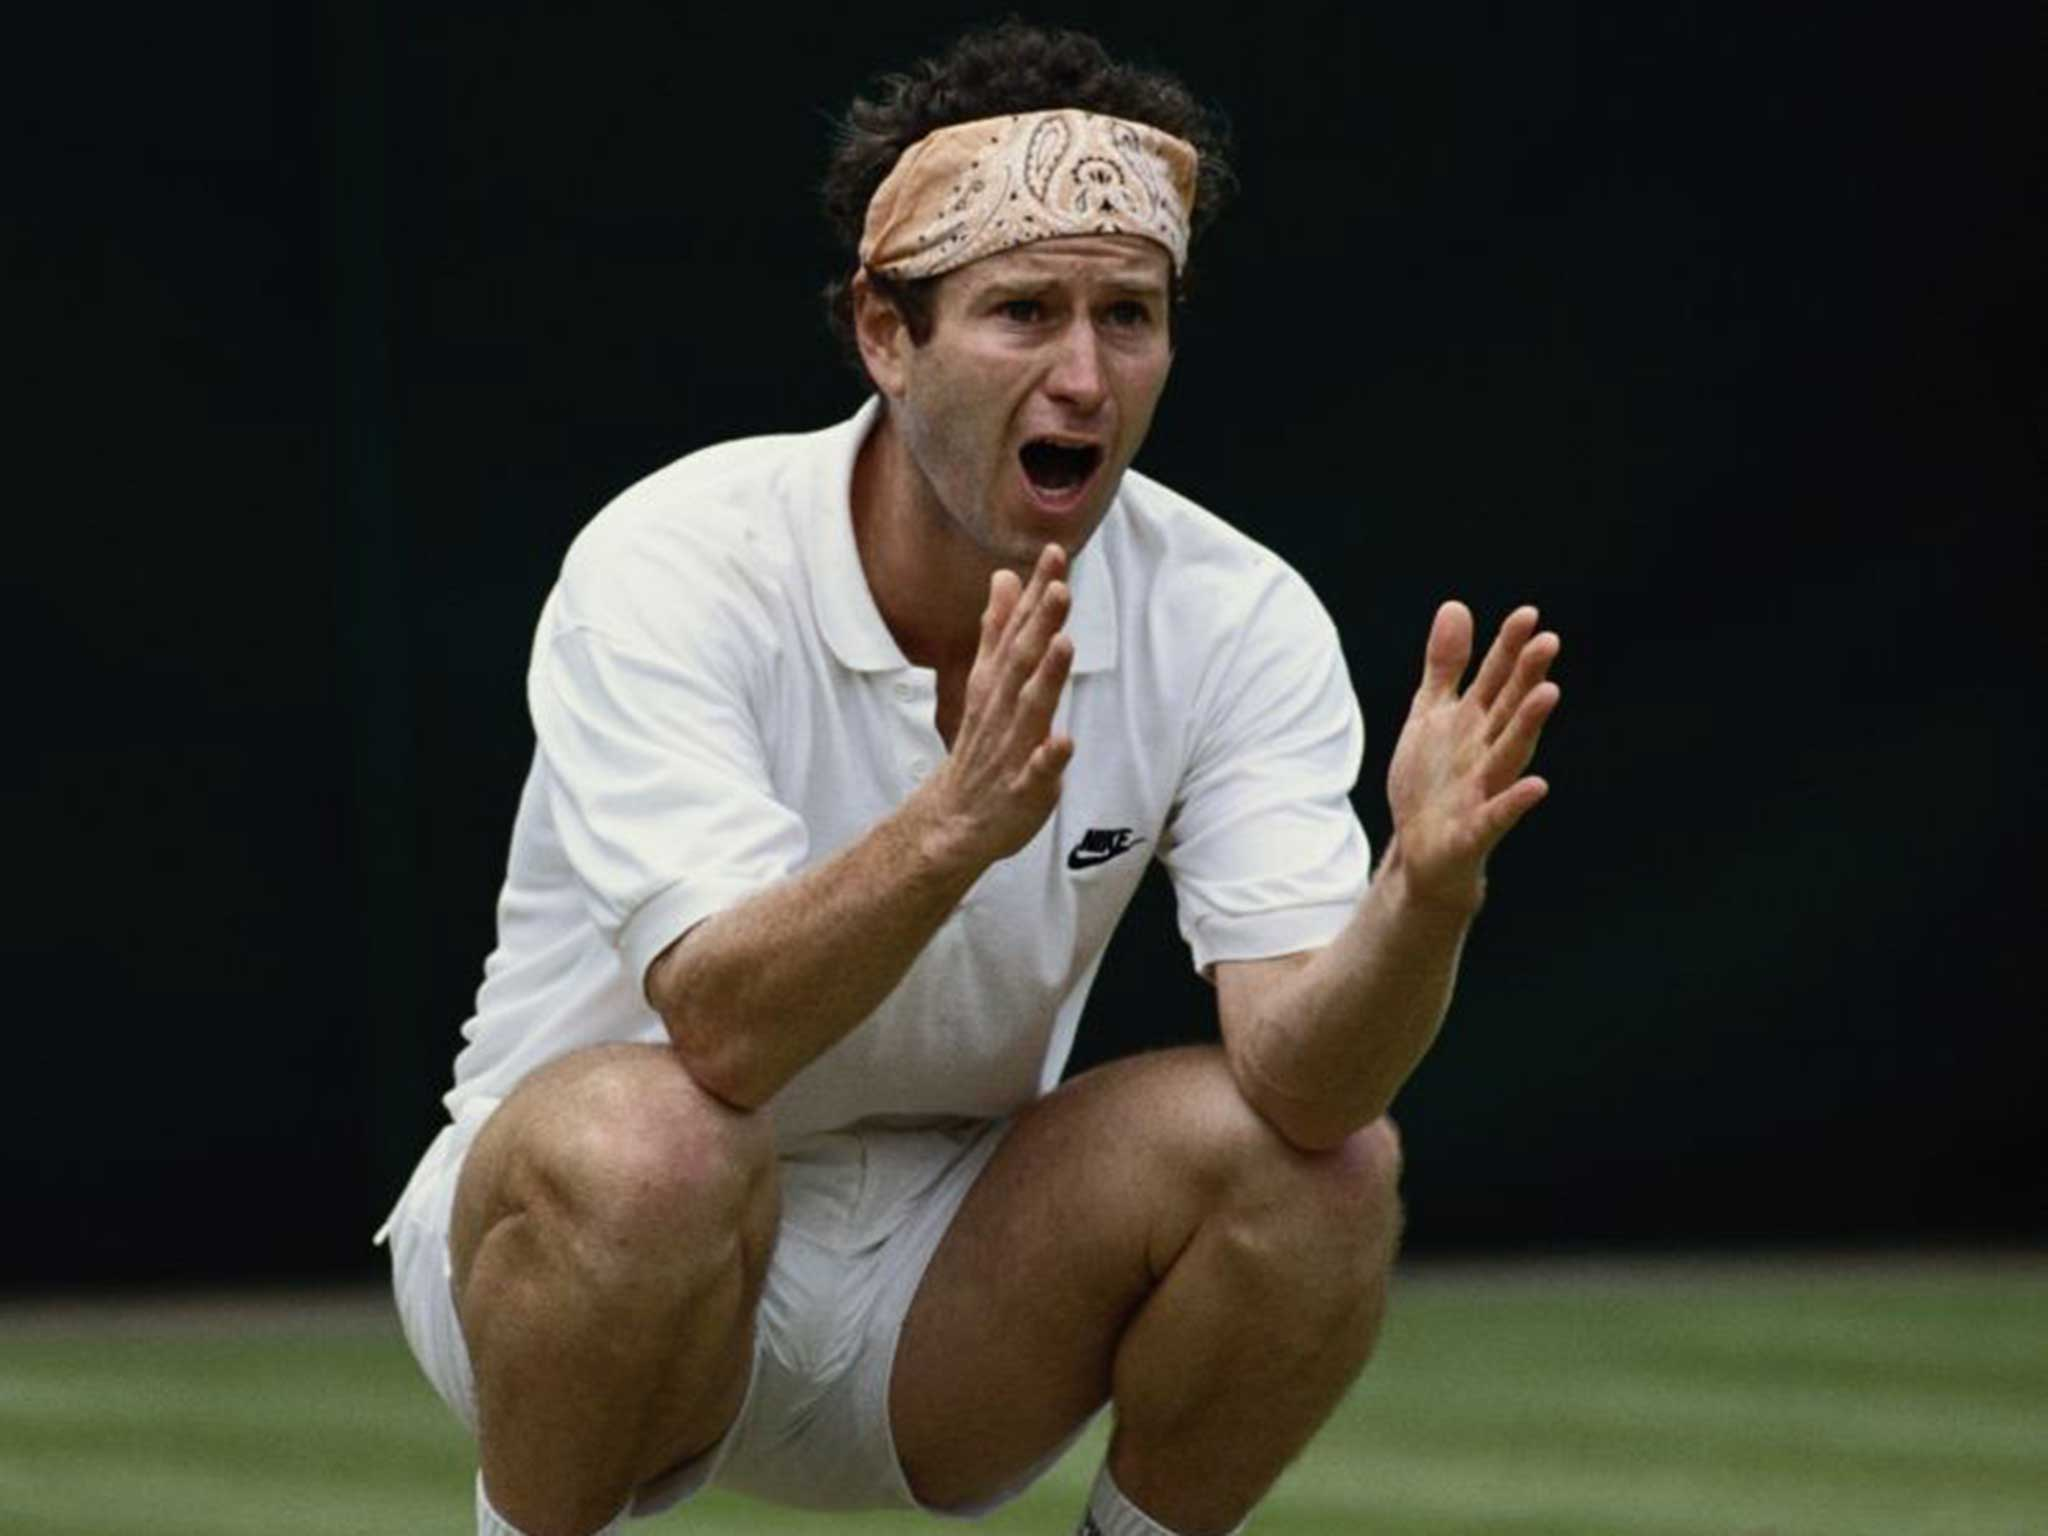 Shia LaBeouf as John McEnroe: First pictures from Borg/McEnroe | The Independent